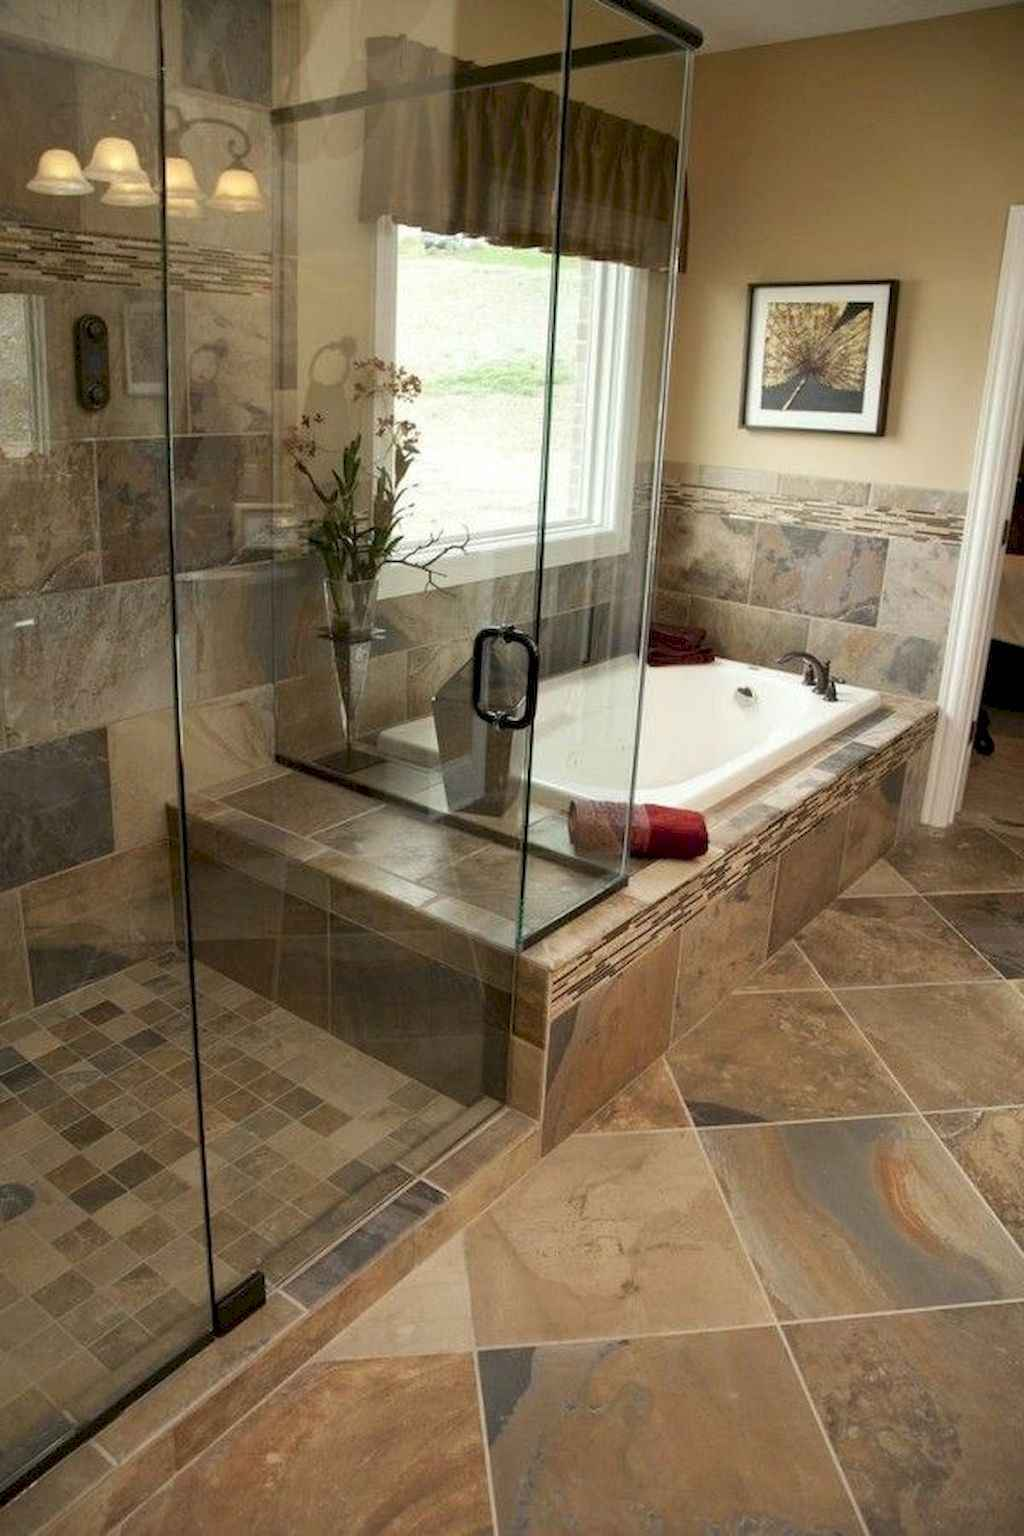 111 awesome small bathroom remodel ideas on a budget (39)